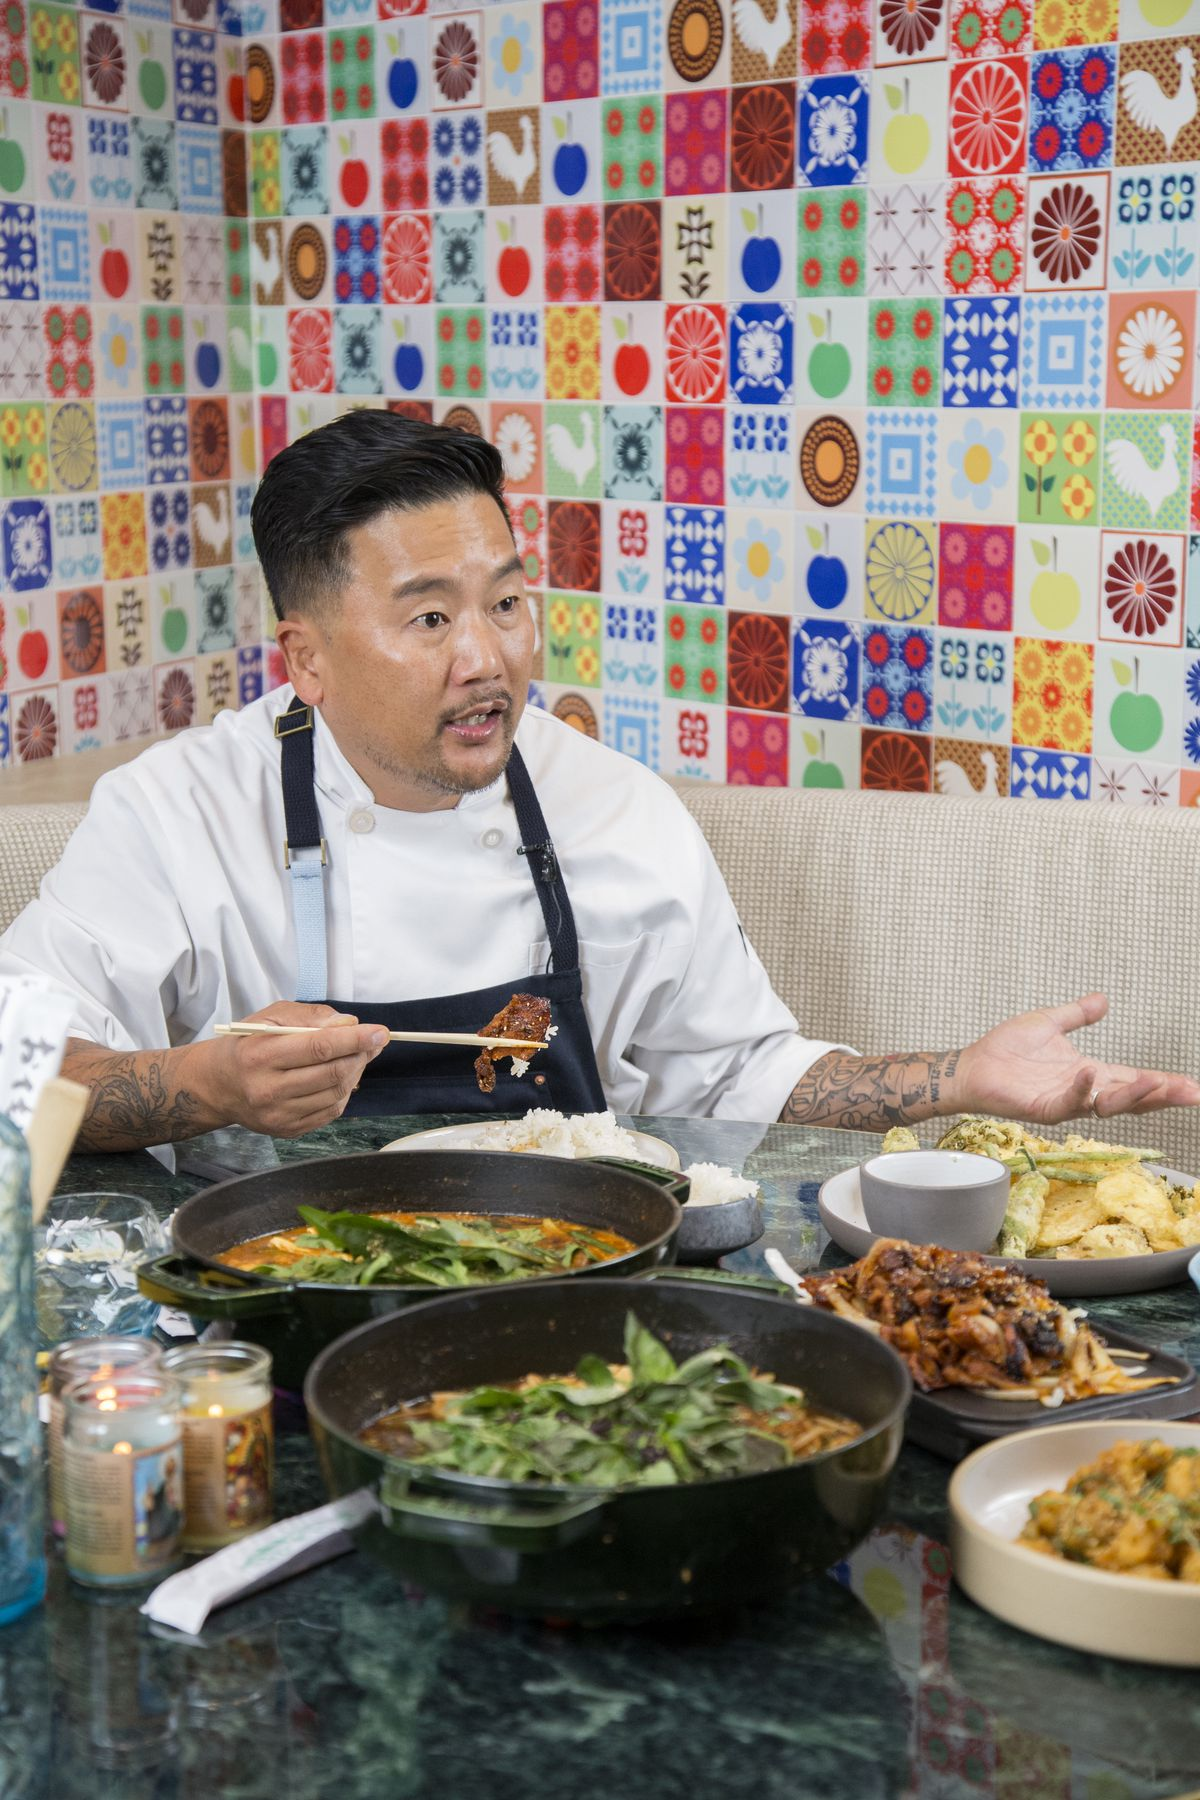 Roy Choi at the chef's table in Best Friend